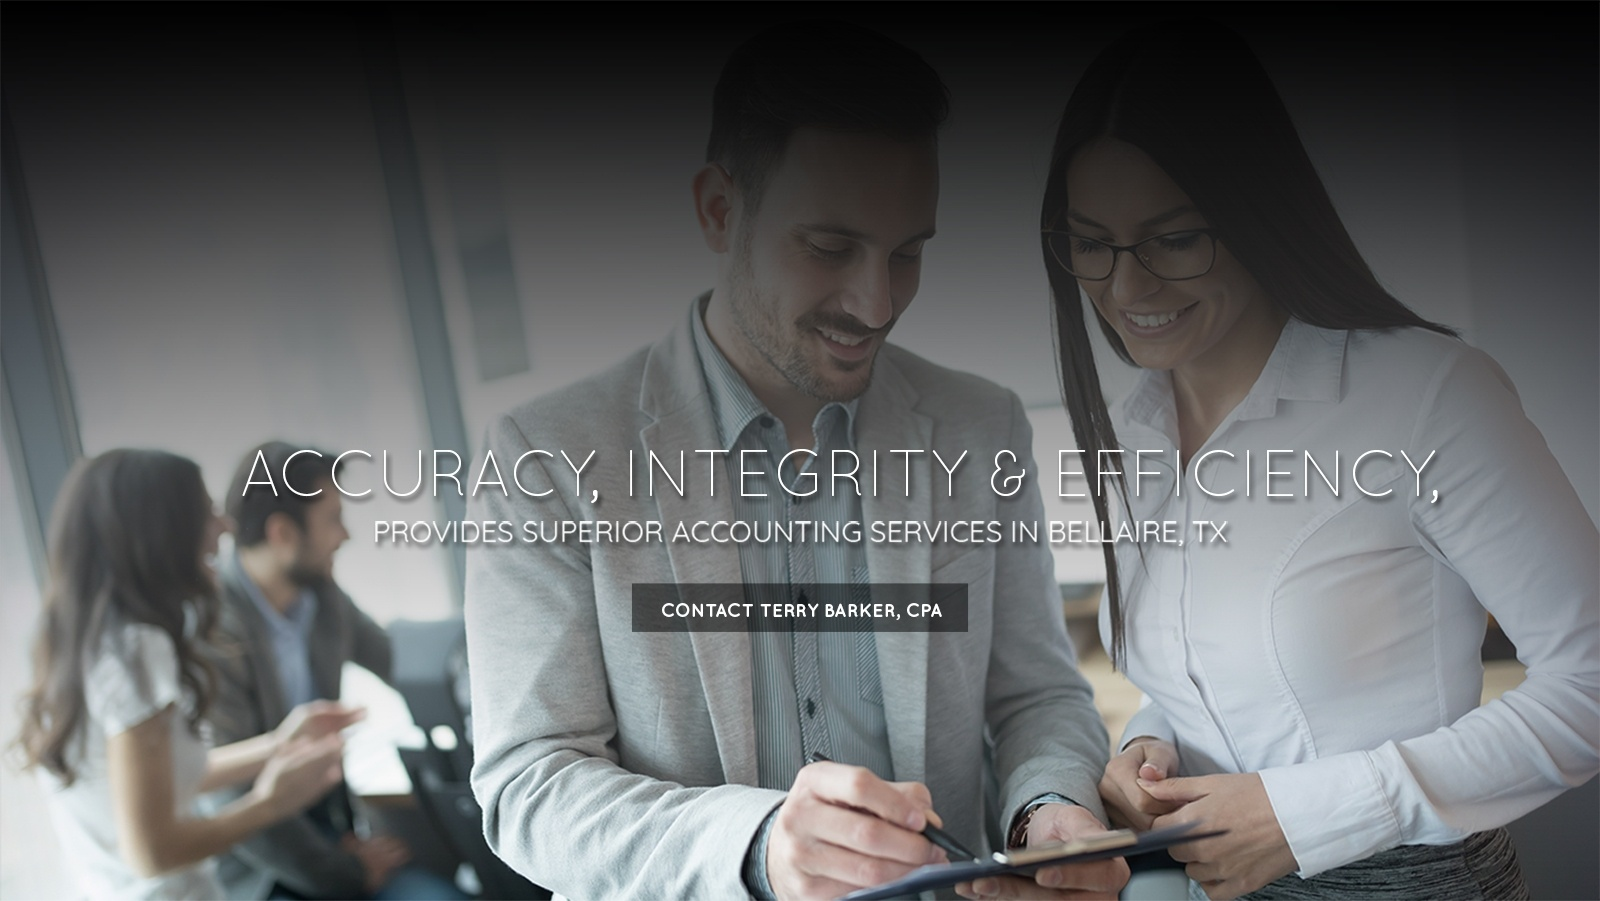 accounting services Bellaire TX